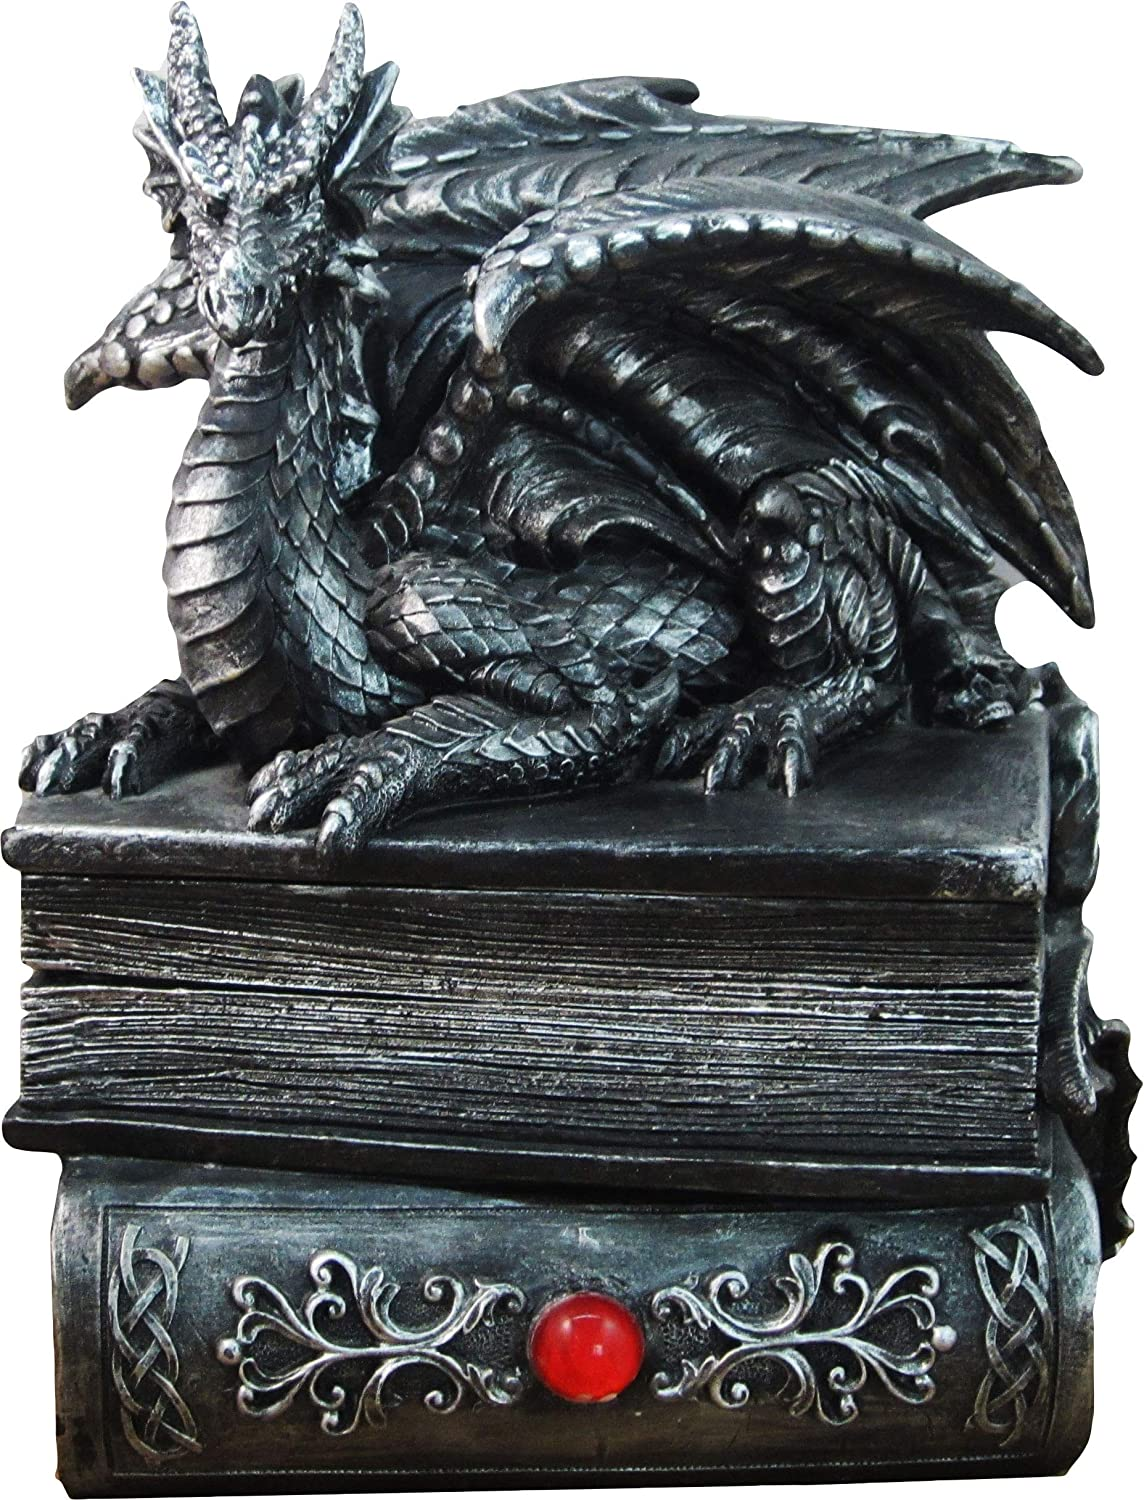 DWK 8 Guardian of Bibliophiles Decorative Medieval Gothic Dragon Trinket Stash Box Statue with Magical Hidden Book Secret Storage Compartment for Fantasy Home Decor